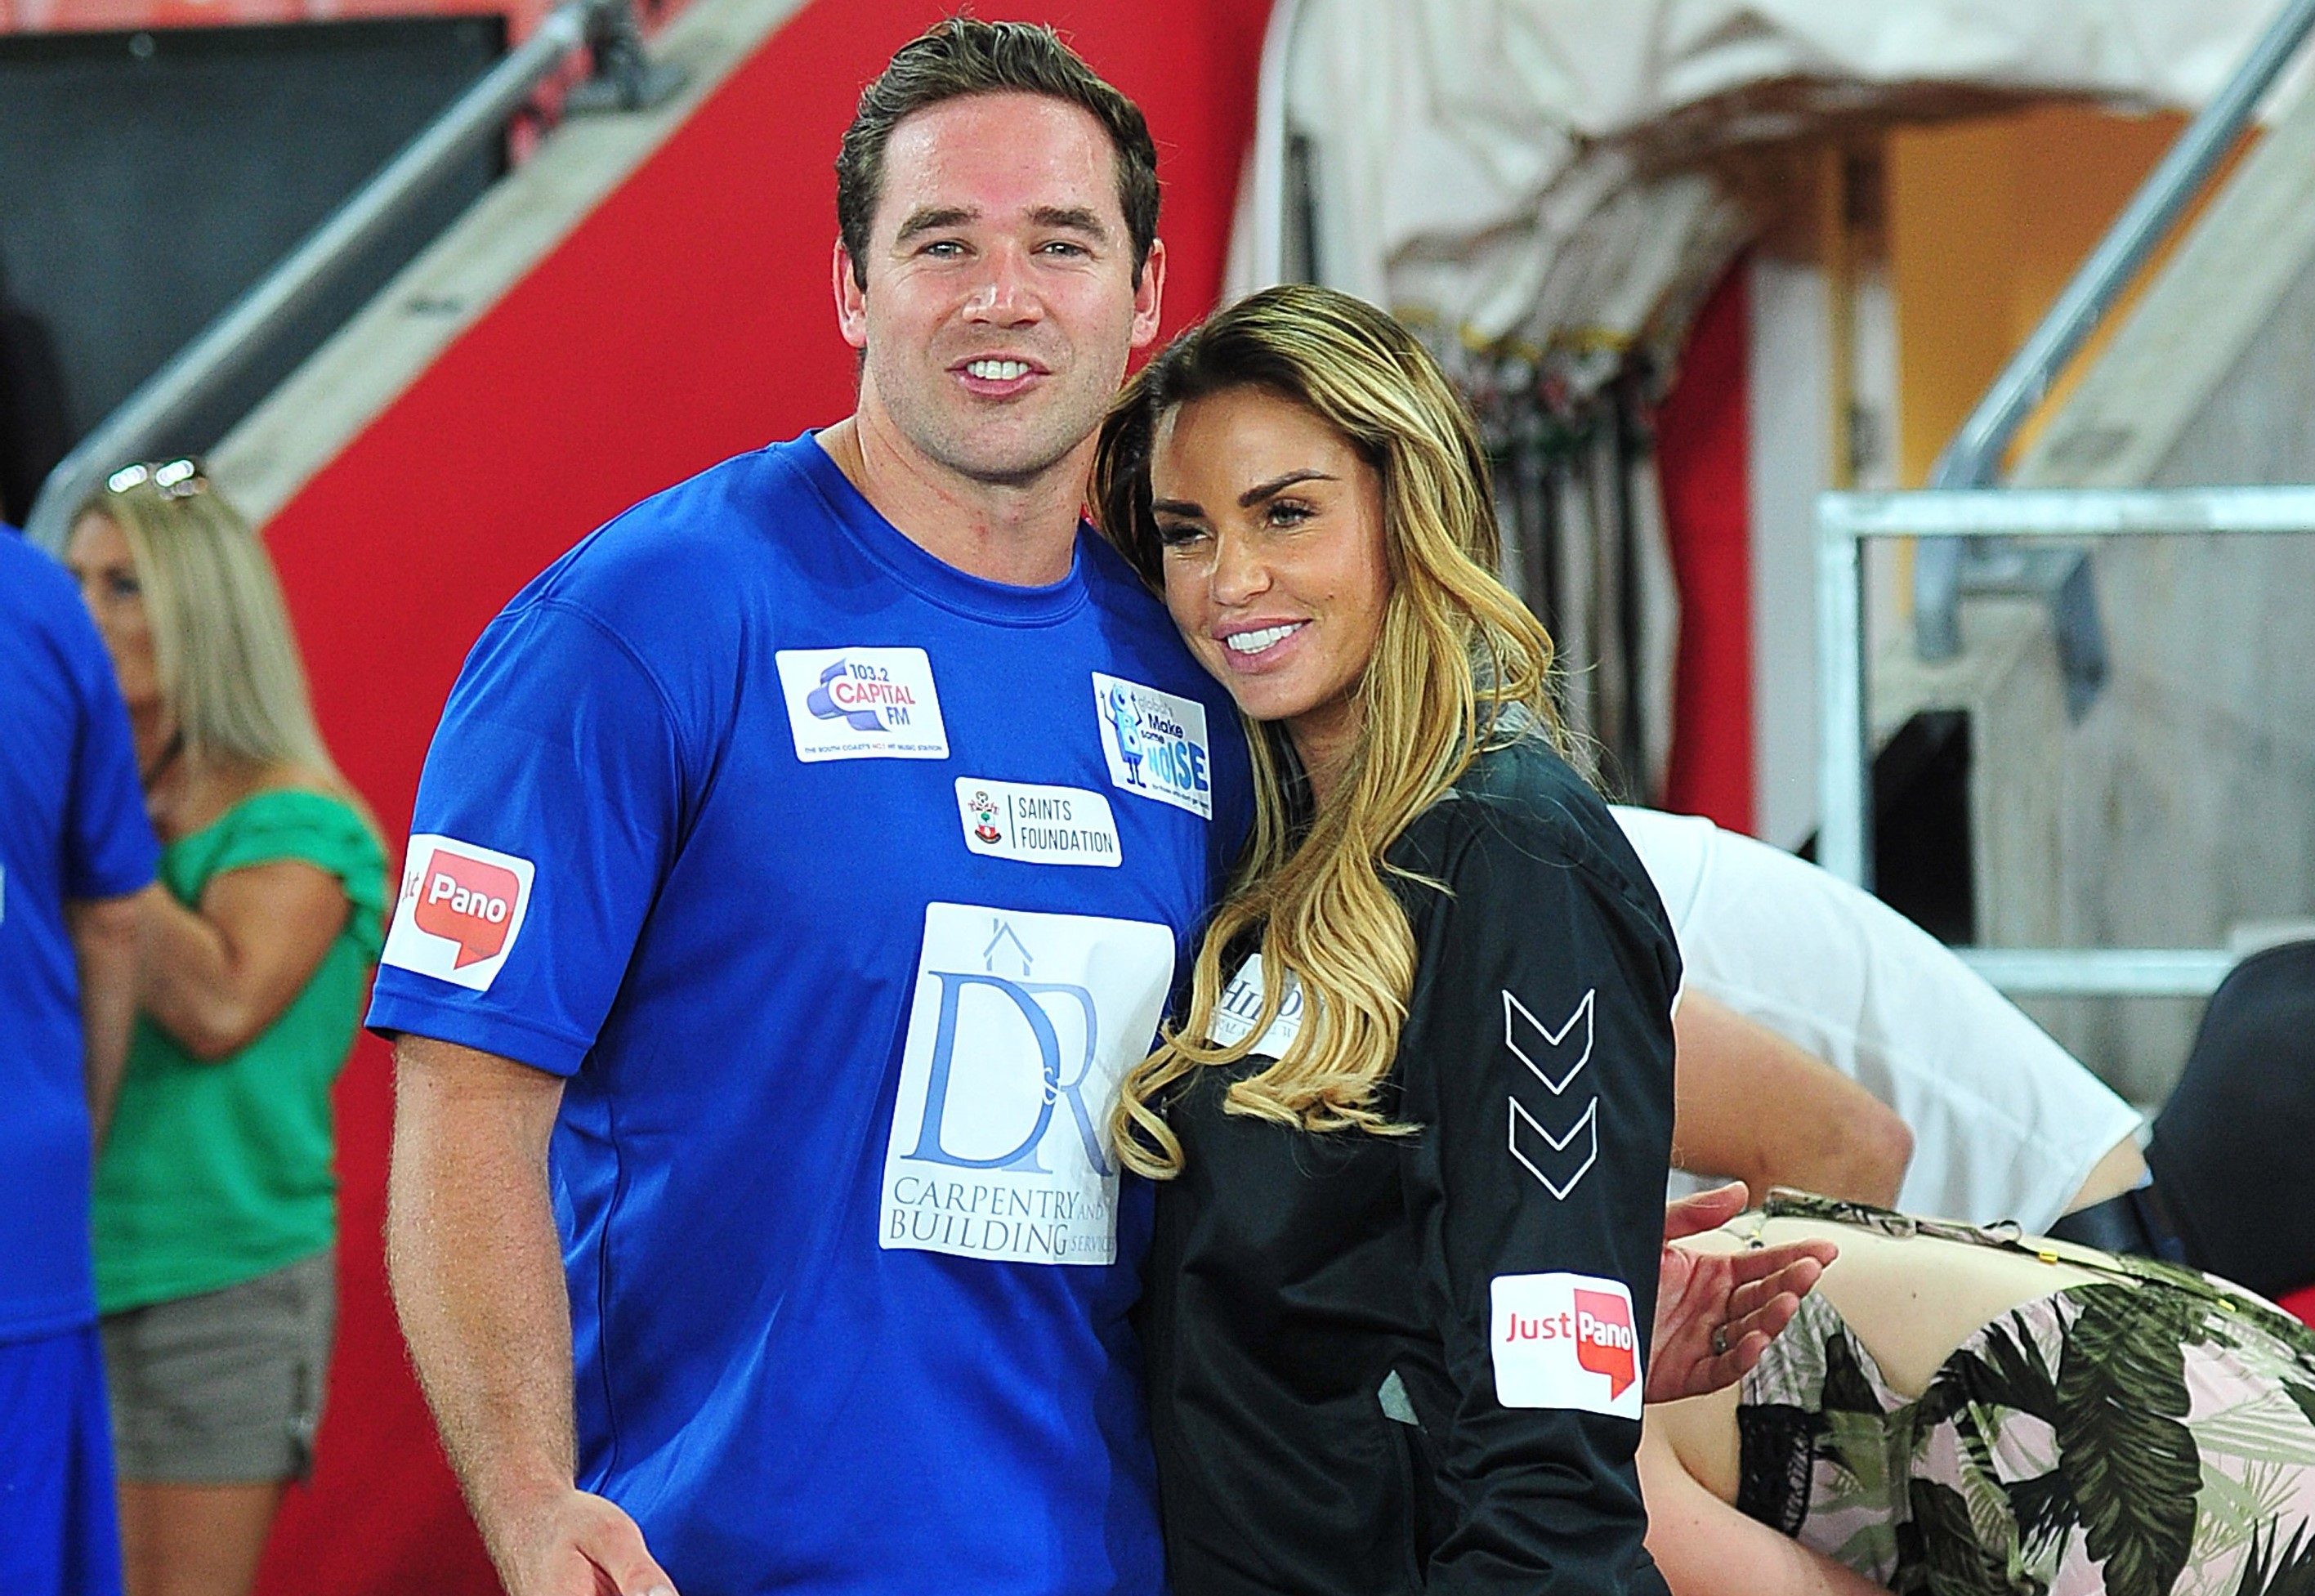 Katie Price confirms she and husband ARE having another child together